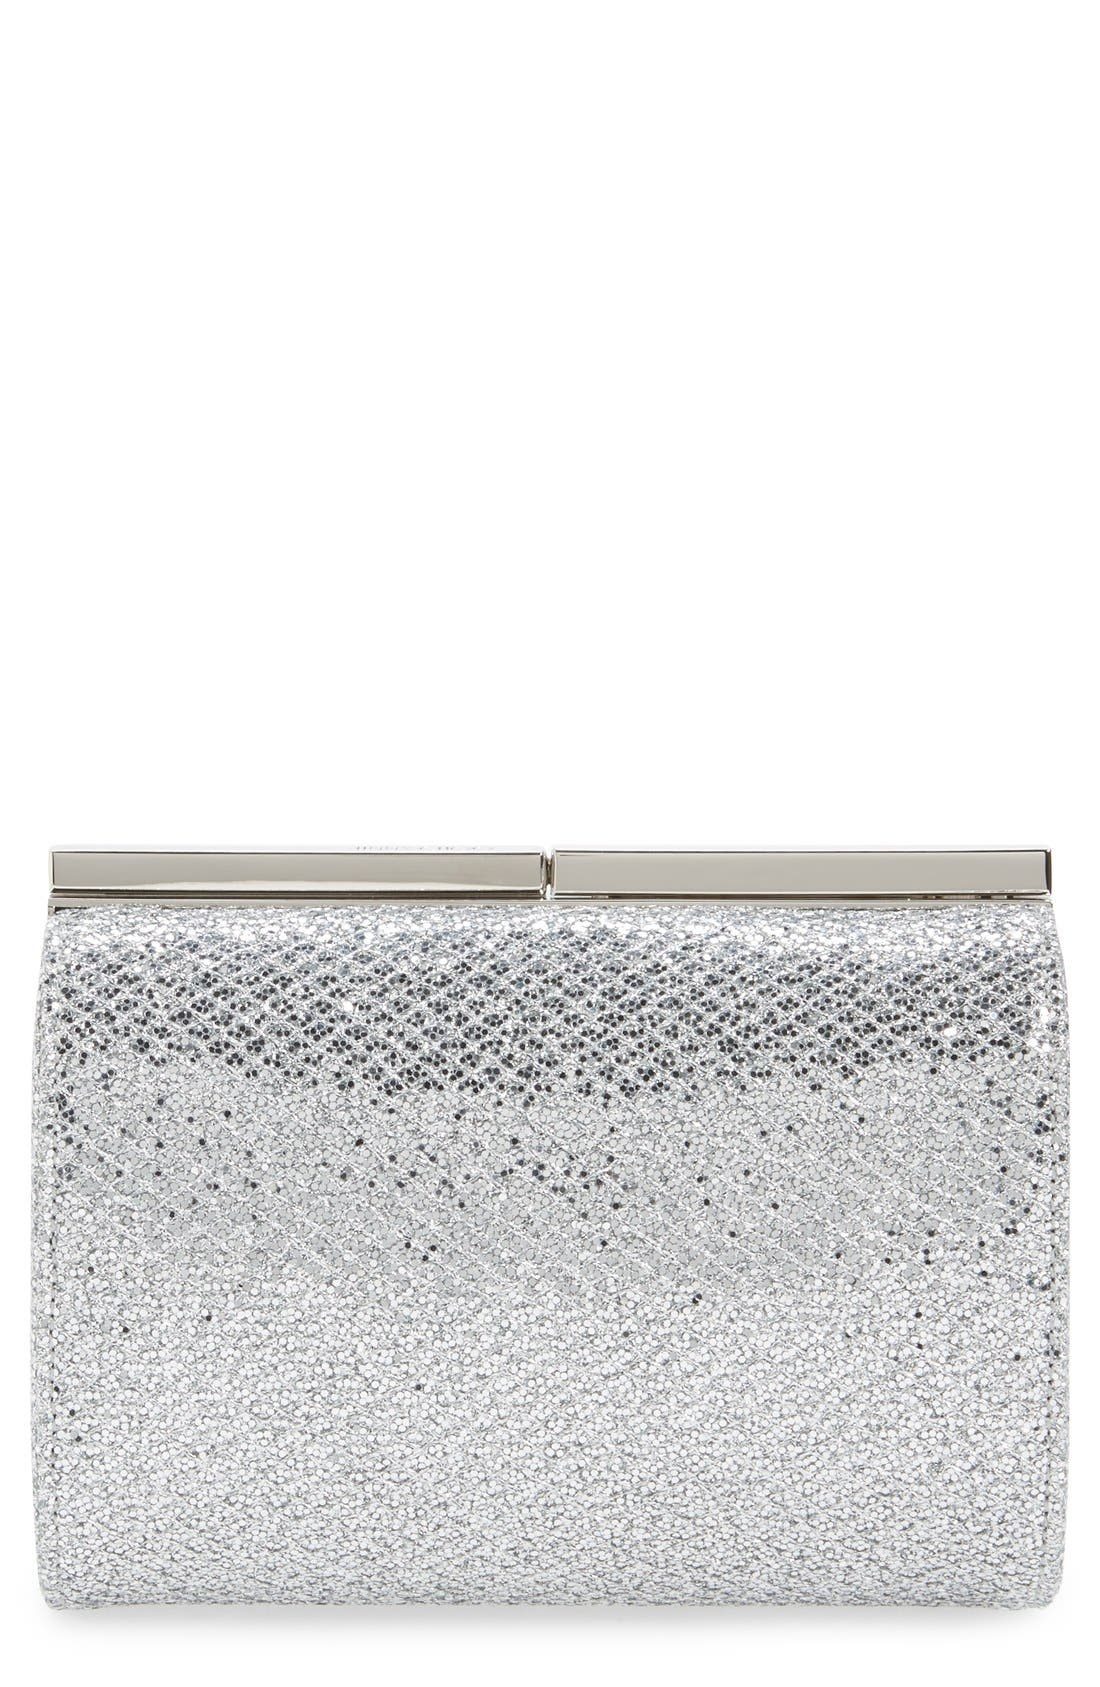 'Cate' Glitter Box Clutch,                             Main thumbnail 1, color,                             040